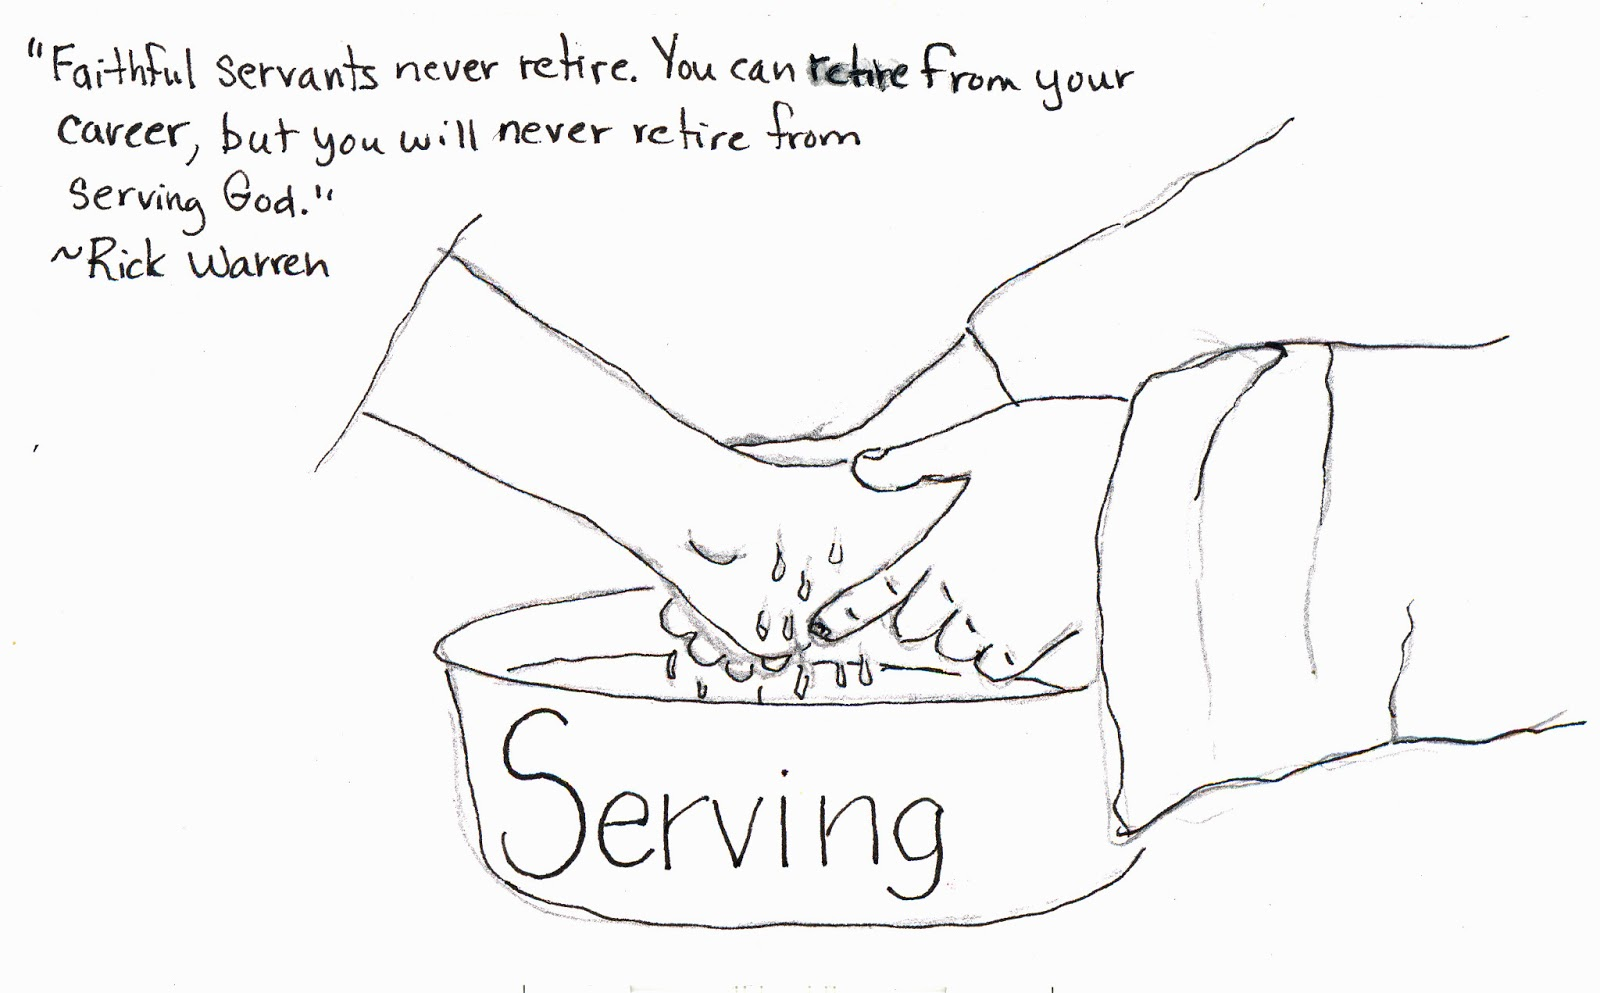 The Trek: SERVING